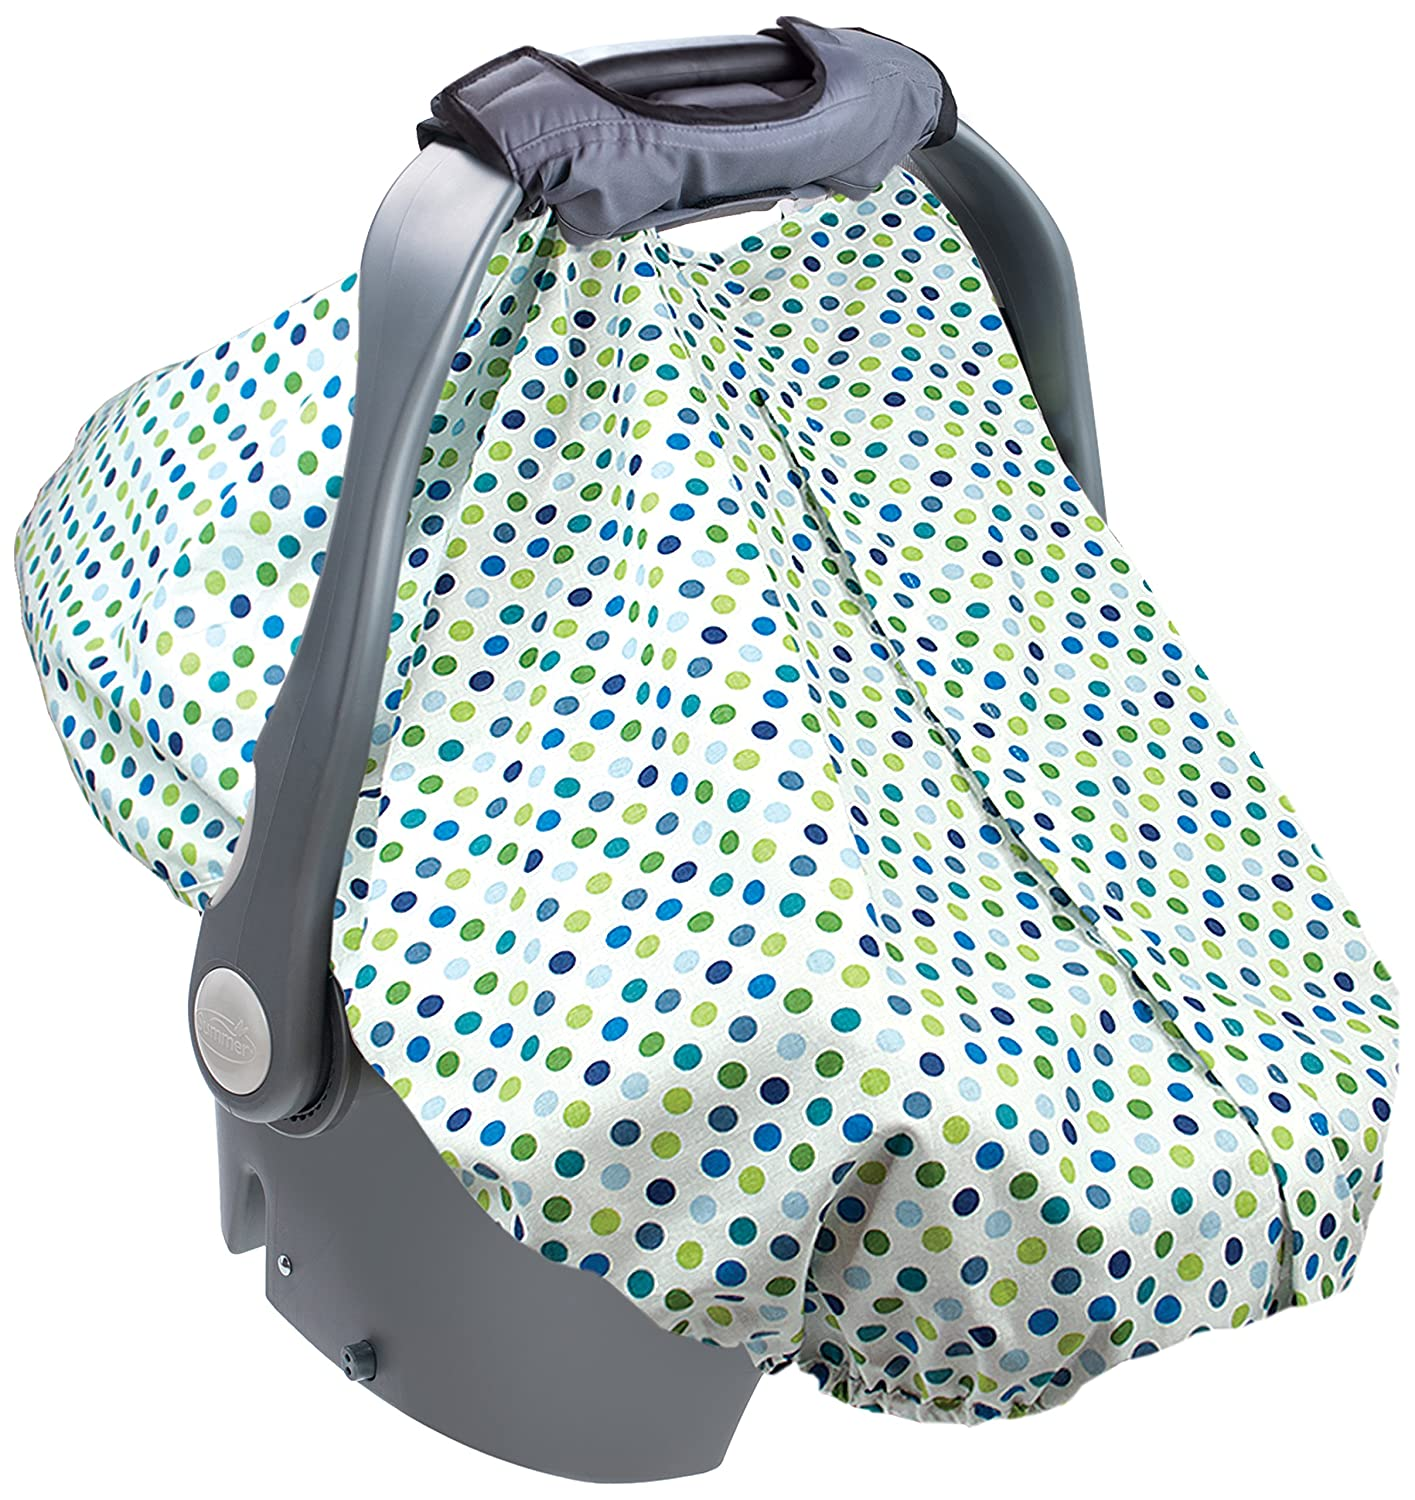 Amazon.com  Summer Infant 2-in-1 Carry and Cover Infant Car Seat Cover White Dots  Baby  sc 1 st  Amazon.com & Amazon.com : Summer Infant 2-in-1 Carry and Cover Infant Car Seat ...